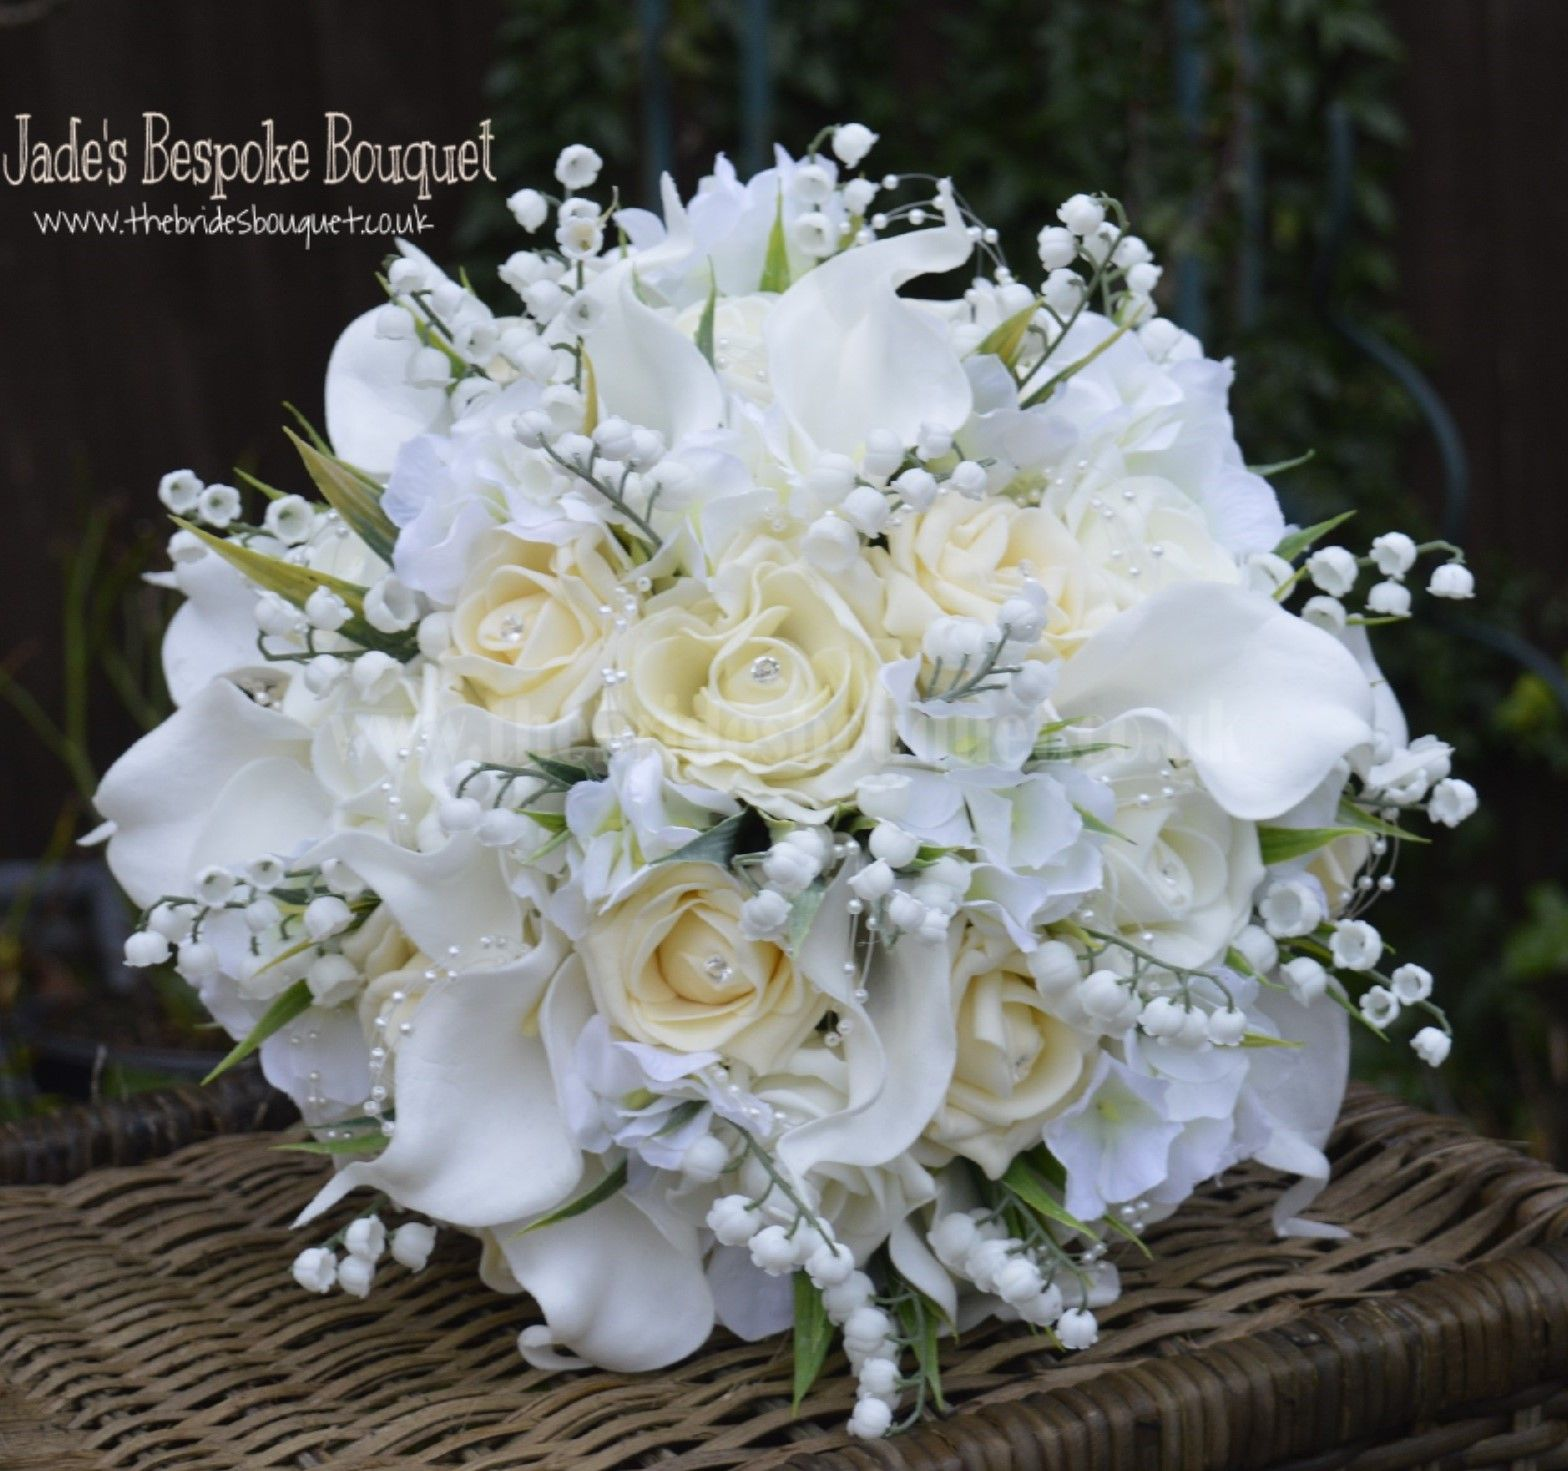 Lily Of The Valley Wedding Flowers: A Bespoke Artificial Rose, Calla Lily, Hydrangea And Lily